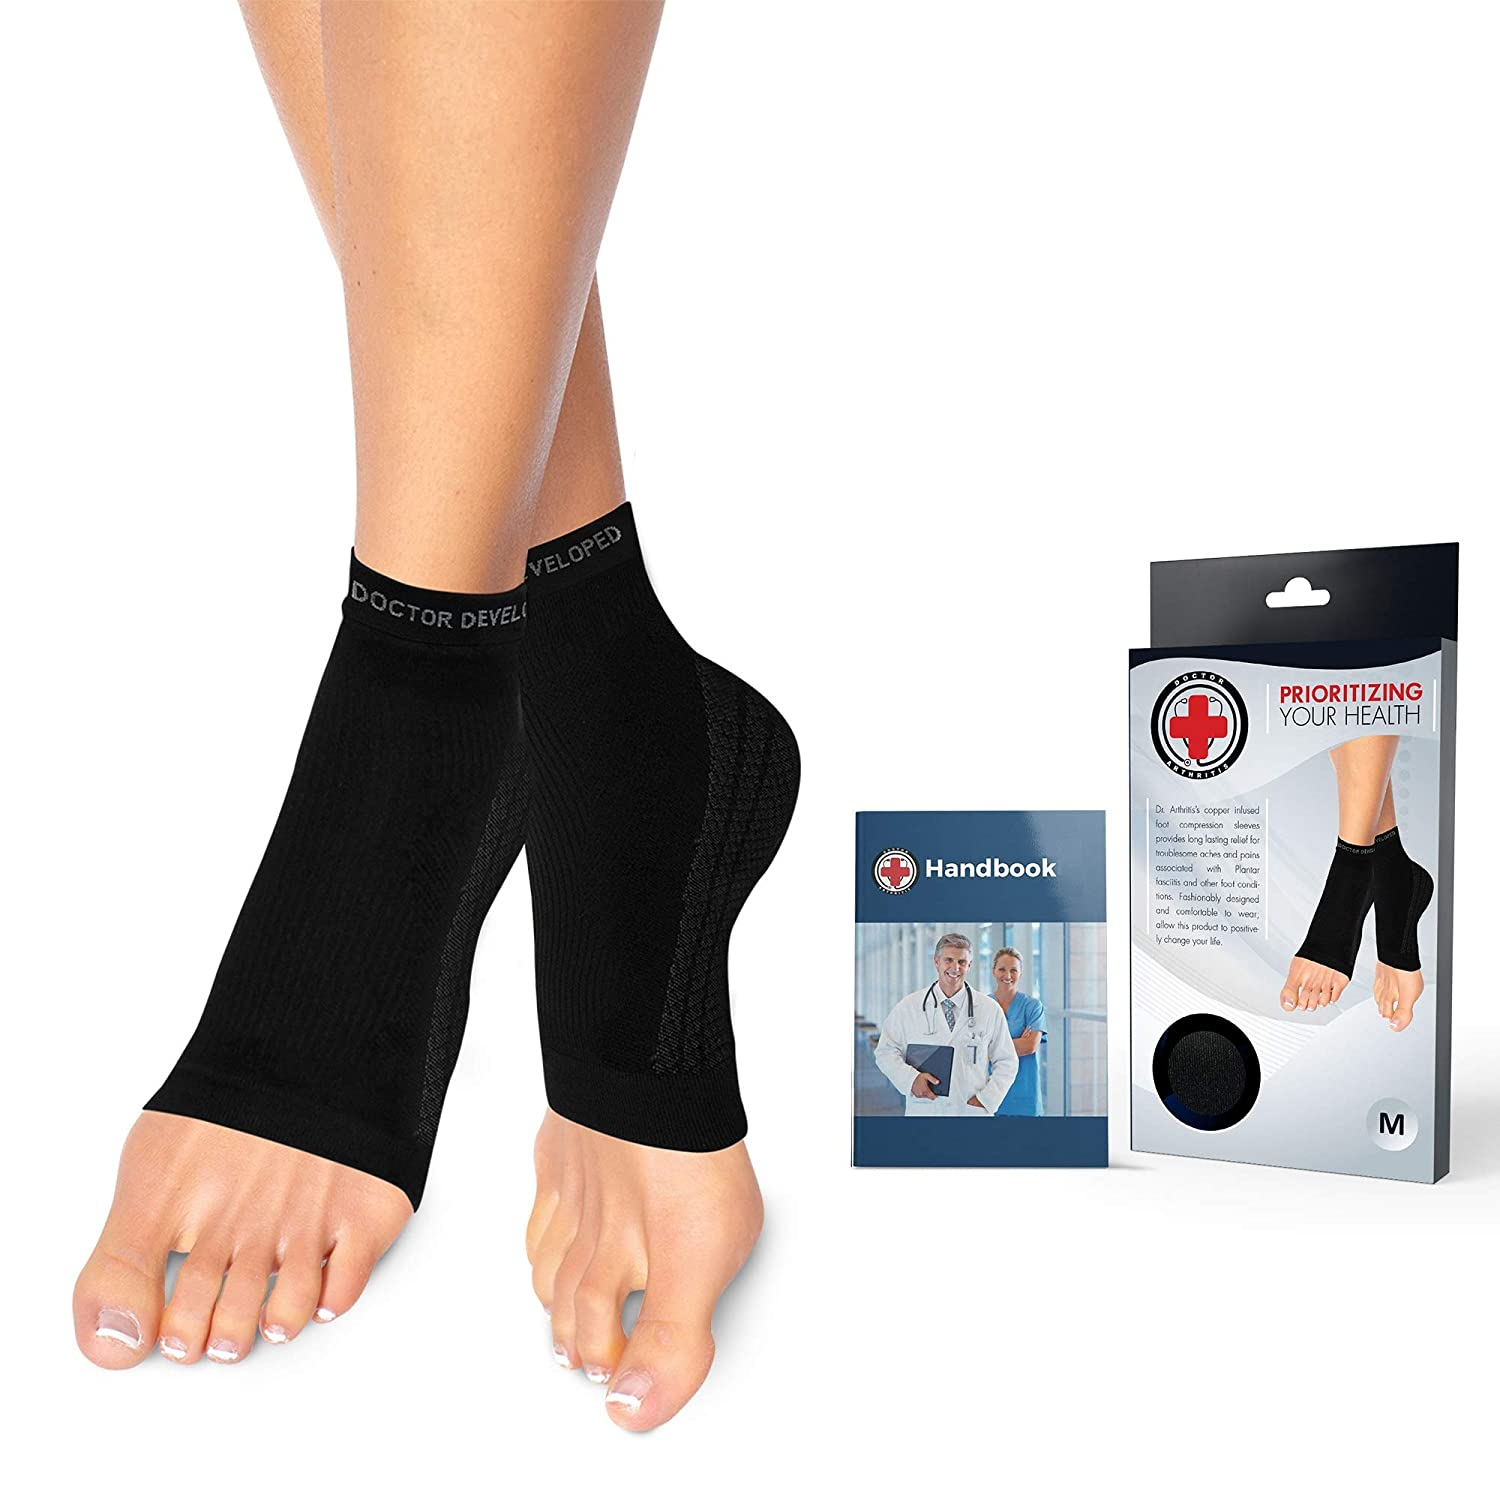 Doctor Developed Copper Infused Foot Compression Sleeves/Plantar Fasciitis  Socks [PAIR] and Doctor Written Handbook